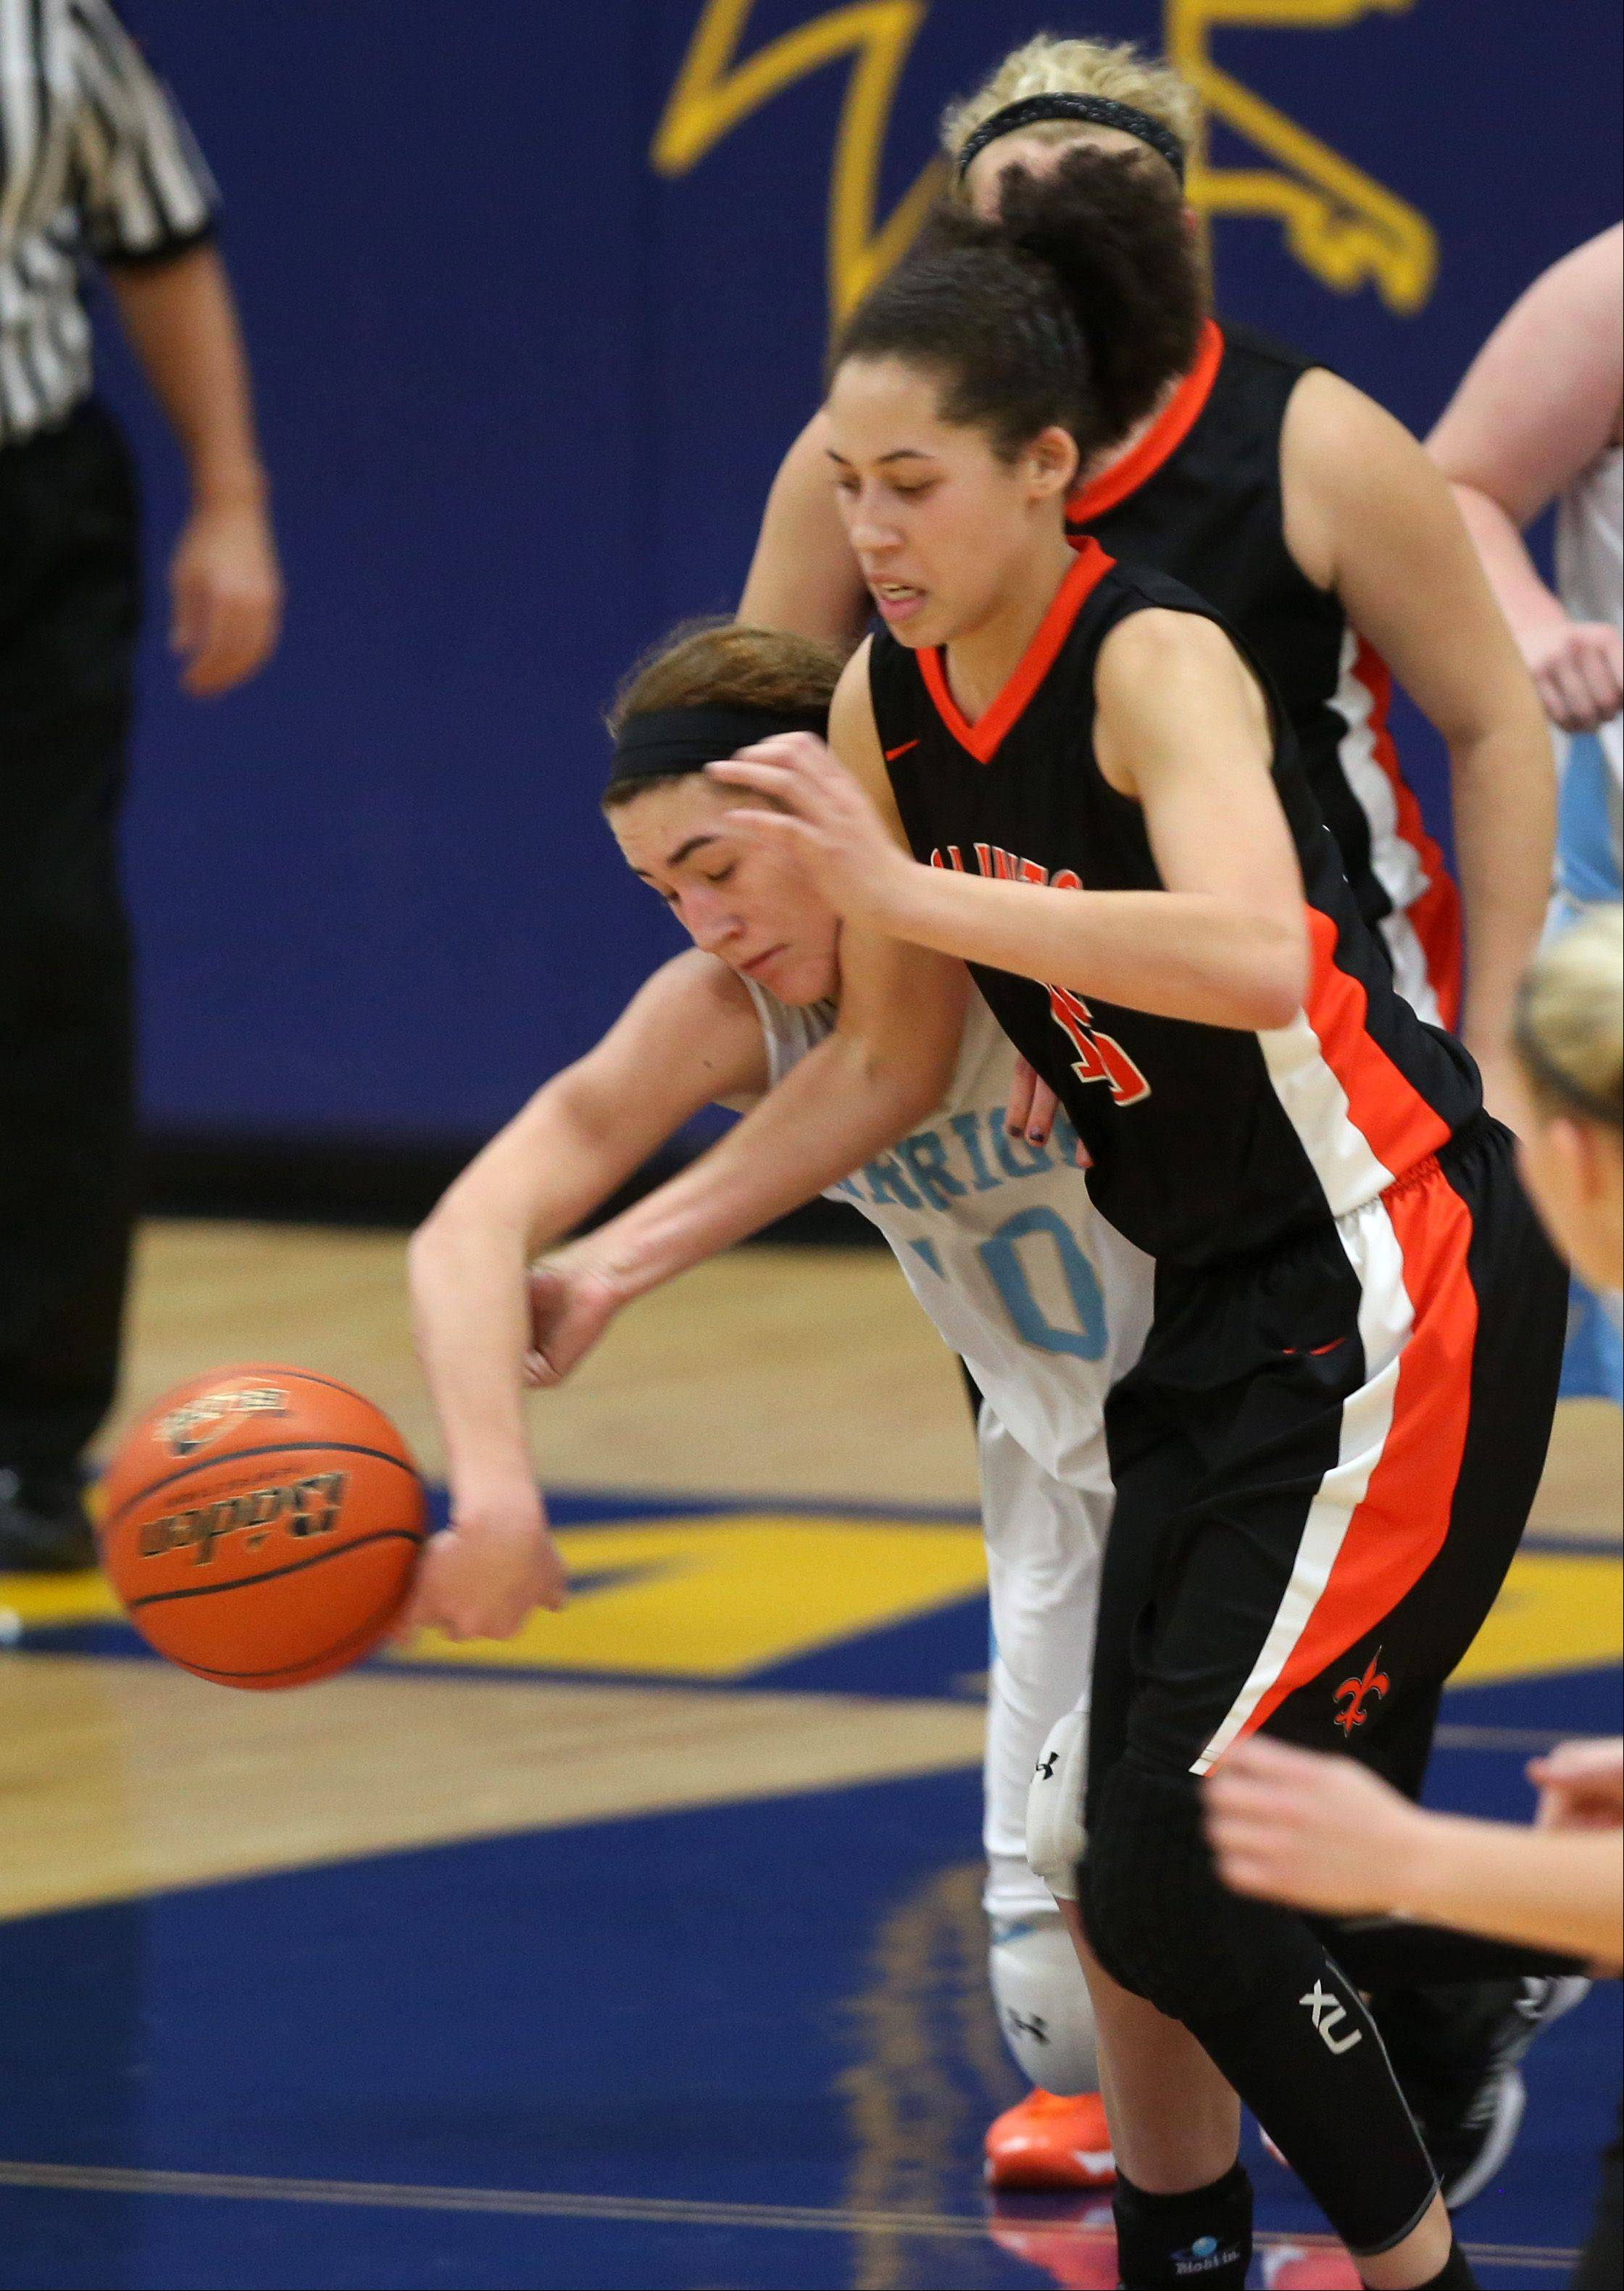 Willowbrook's Molly Krawczykowski, left, battles St. Charles East's Kyra Washington during the Falcon Classic girls basketball tournament at Wheaton North.